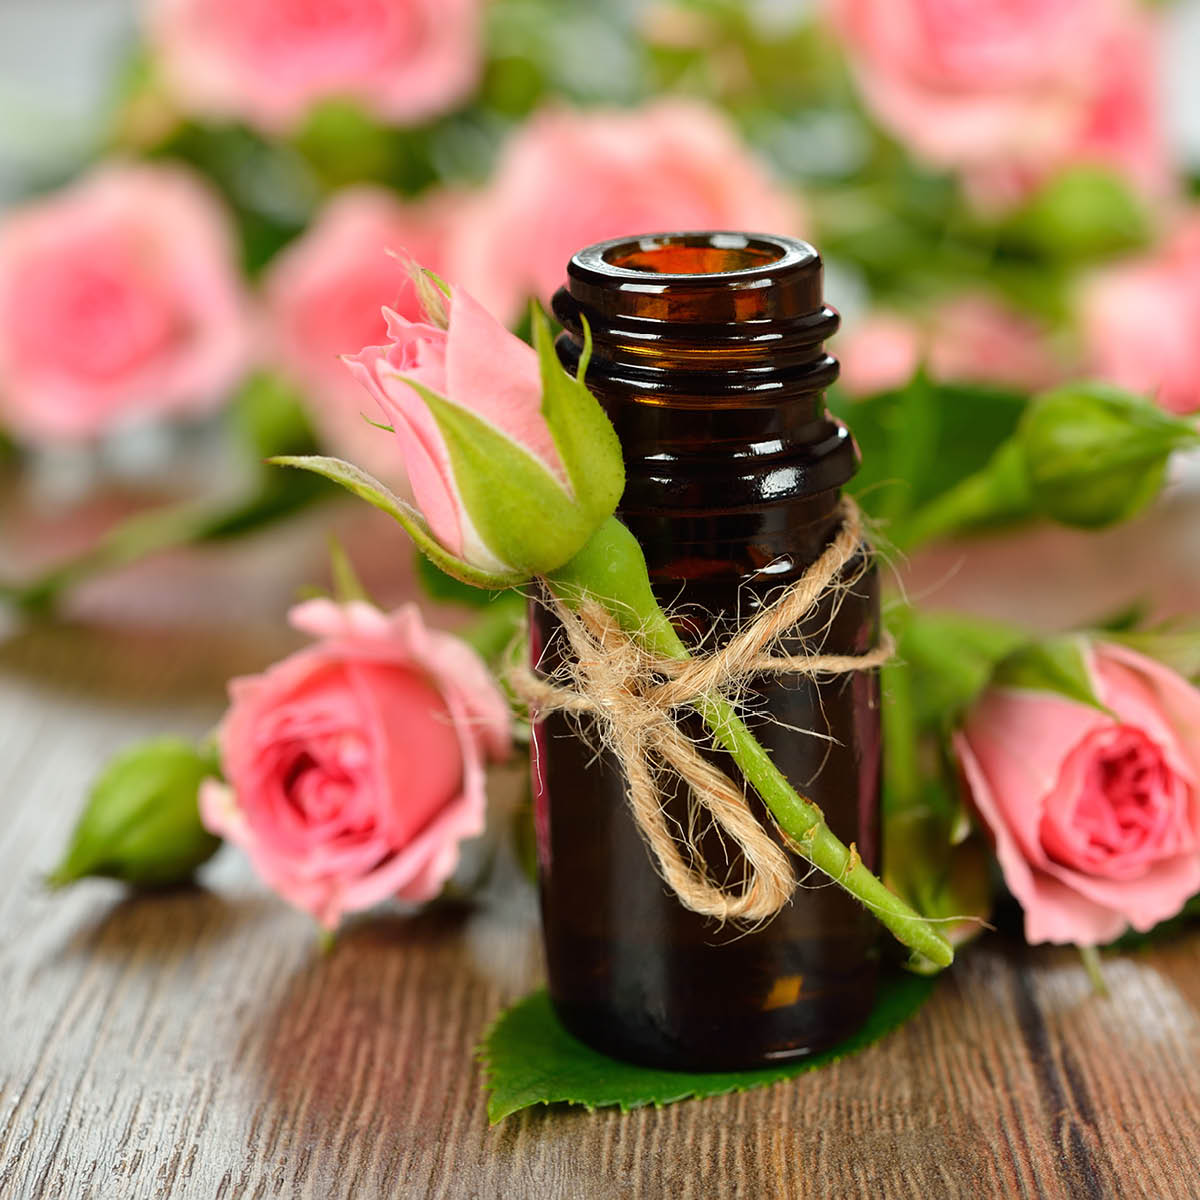 Rose Absolute Essential Oil – Nature Identical